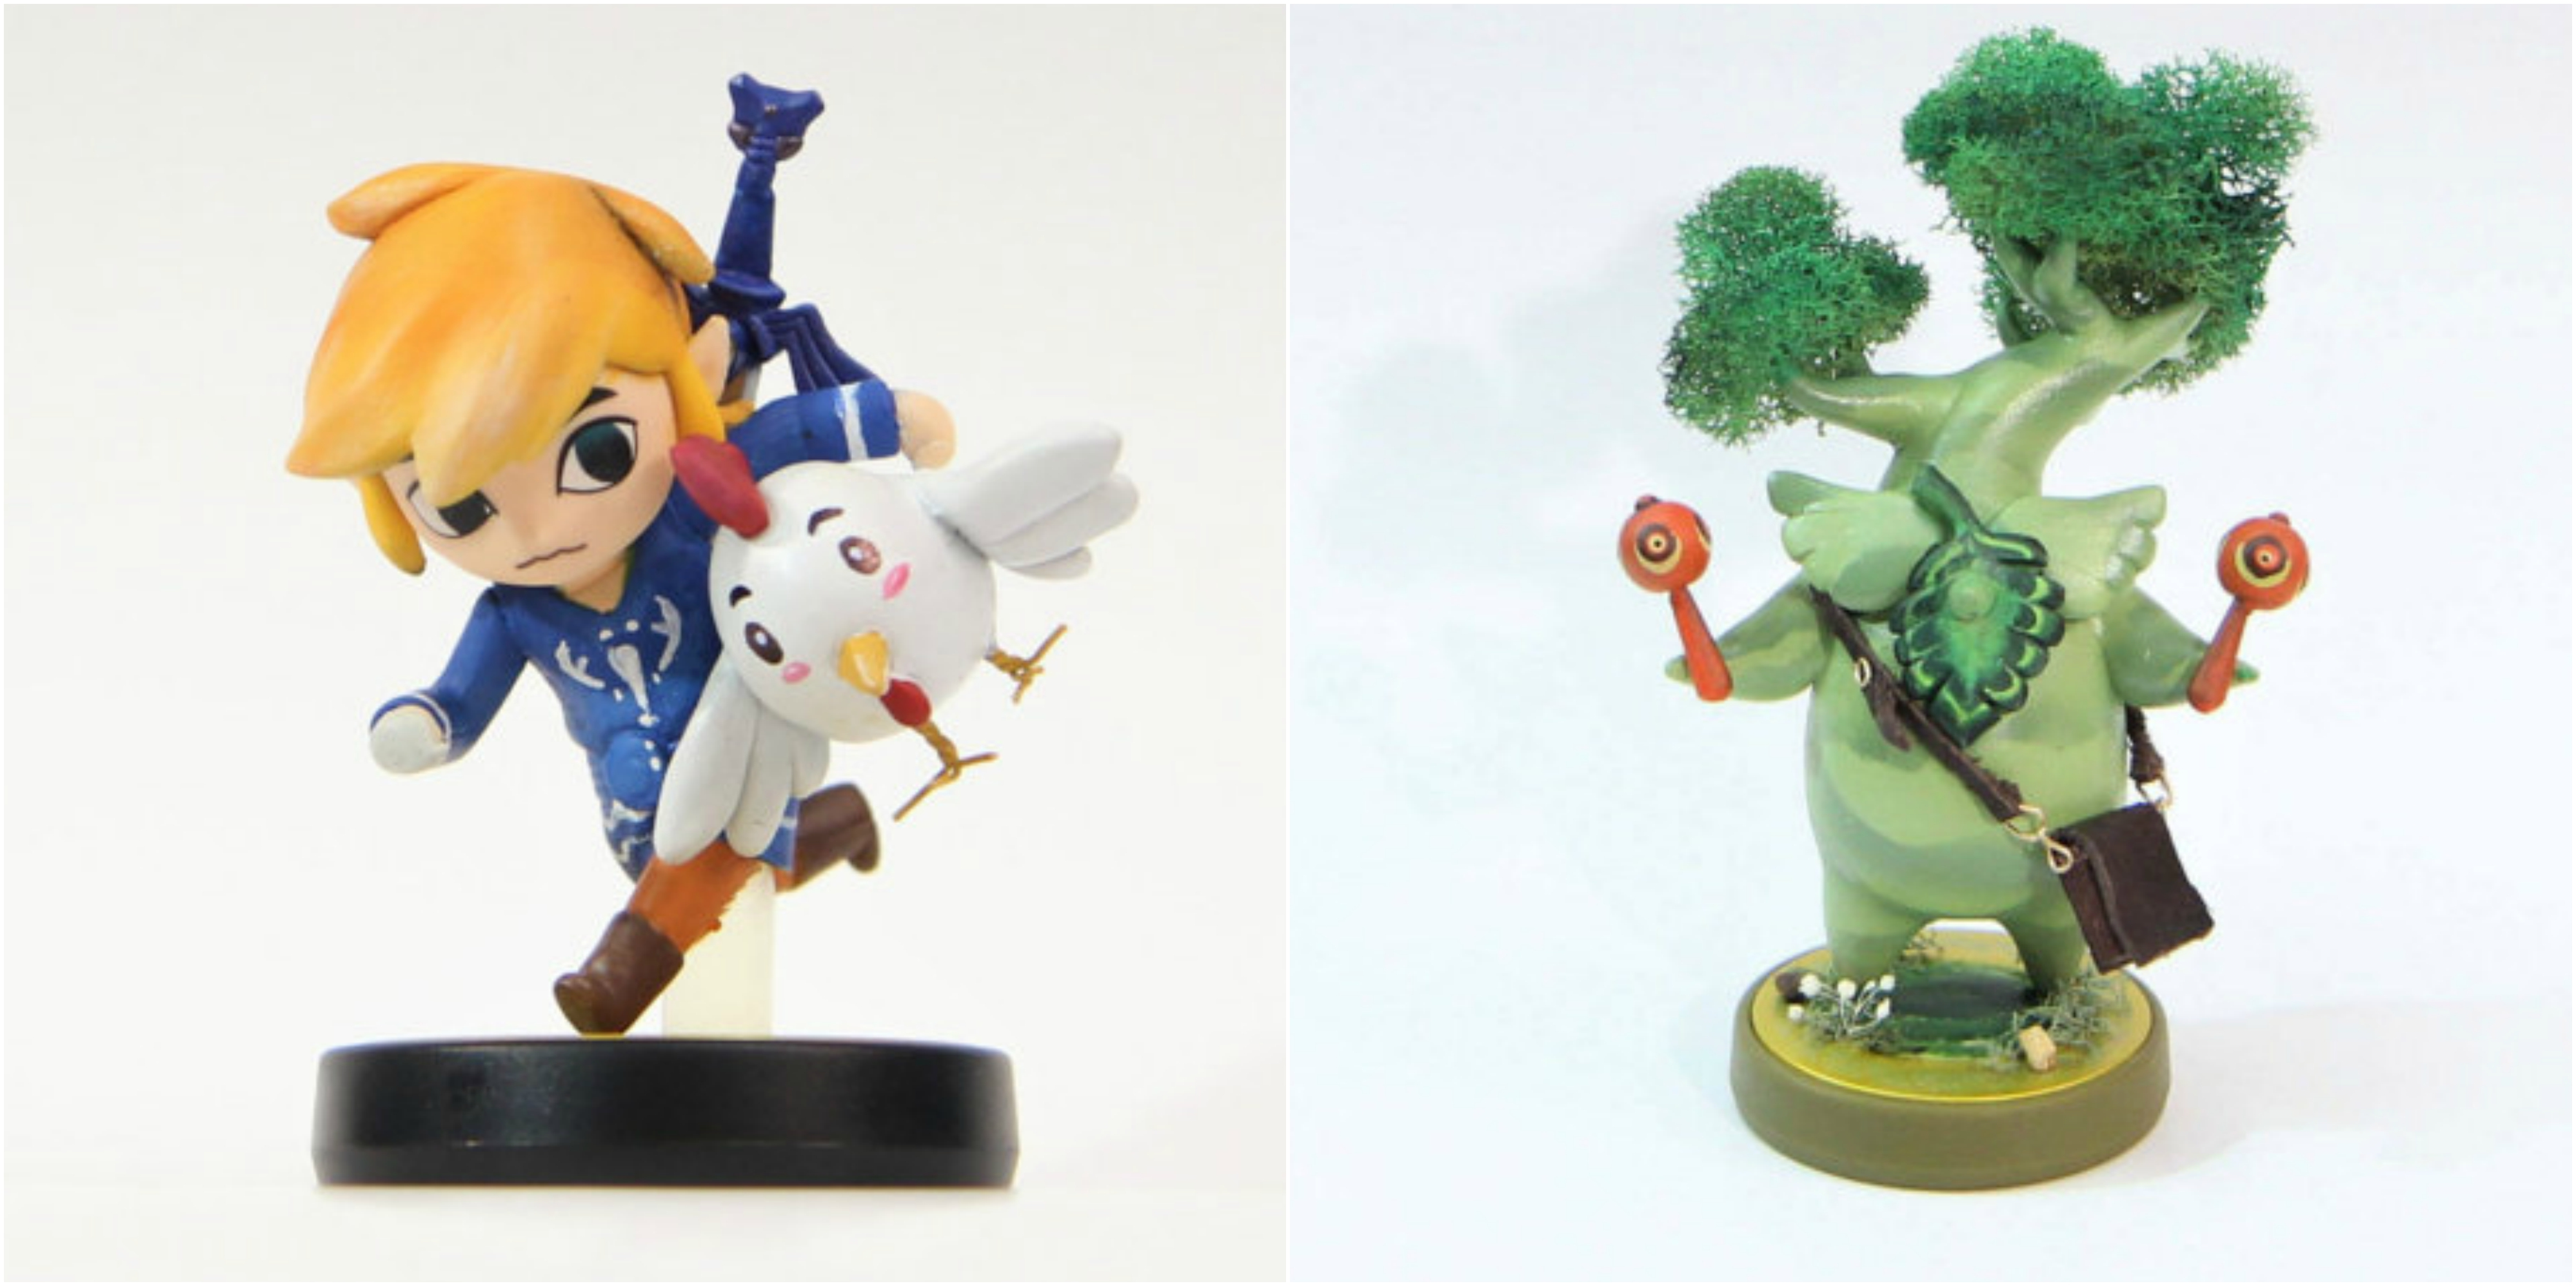 Check Out These Awesome Custom Amiibo Figures